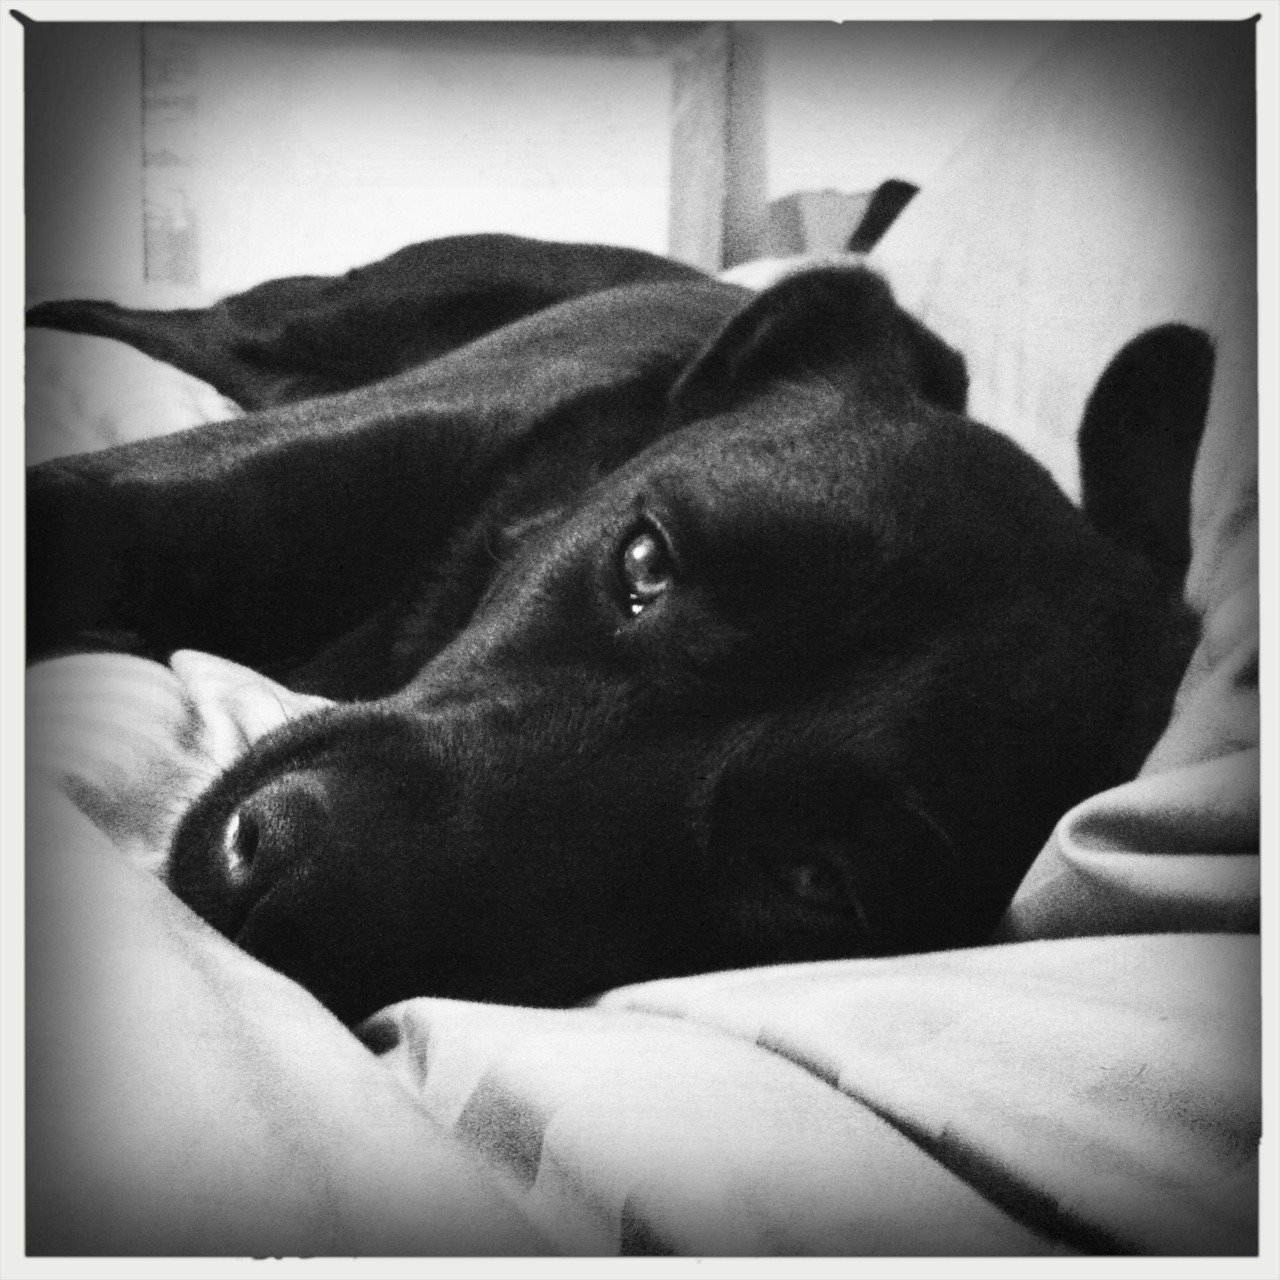 Pooped Pup Taken with Hipstamatic, Melodie Lens and AO BW Film, no flash.